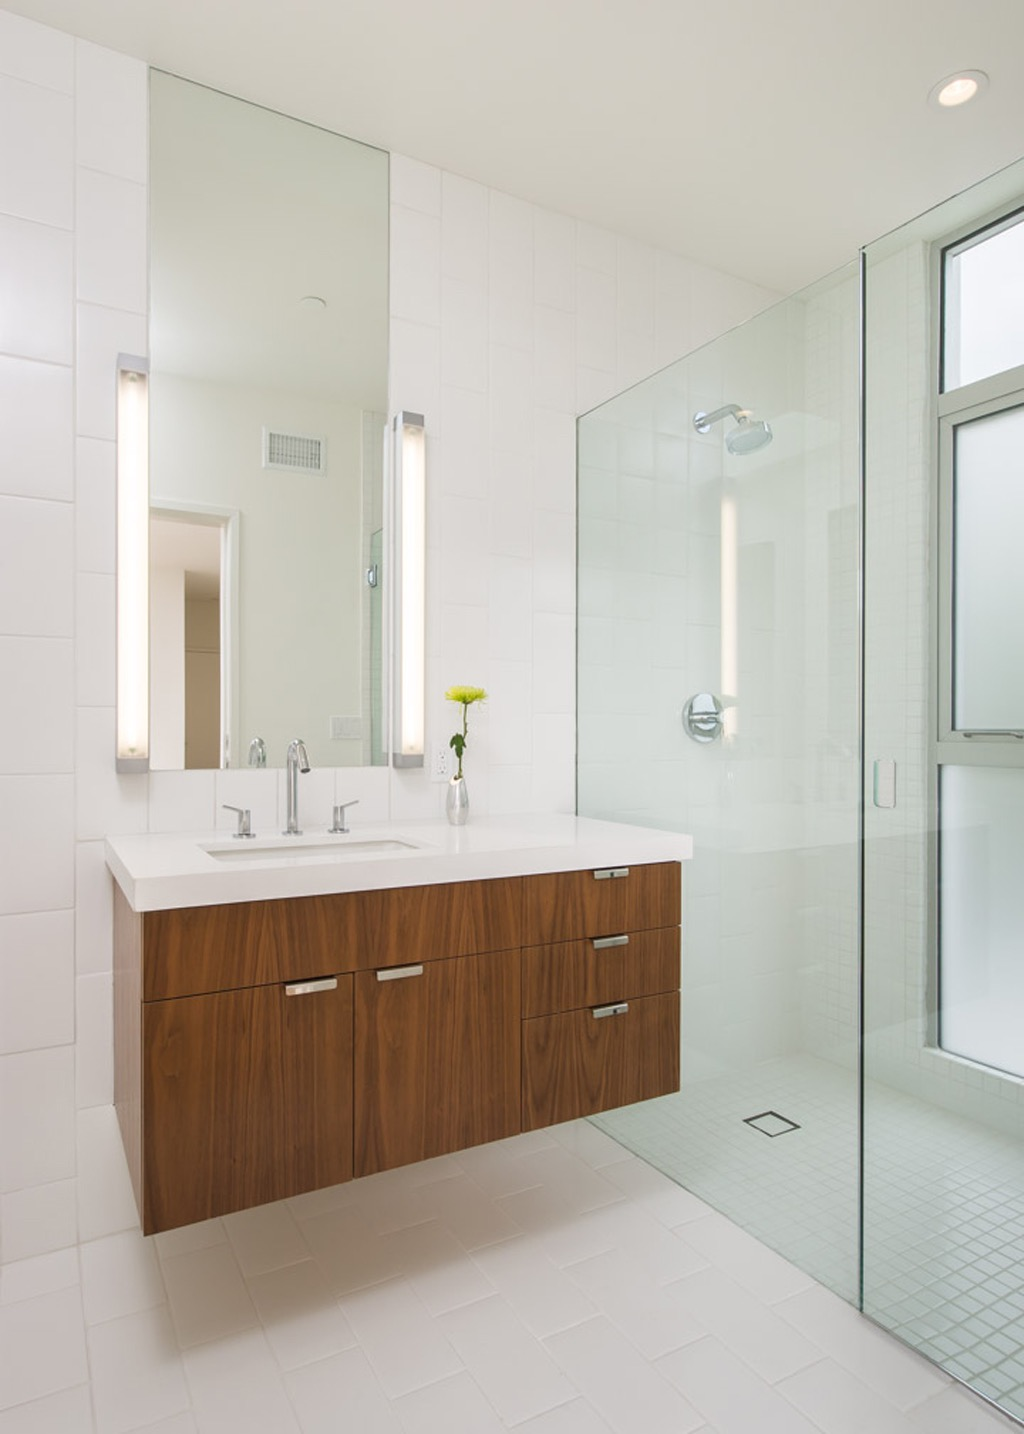 Modern Lighting For Bathroom Floating Vanity With Rectangular Mirror (View 16 of 19)